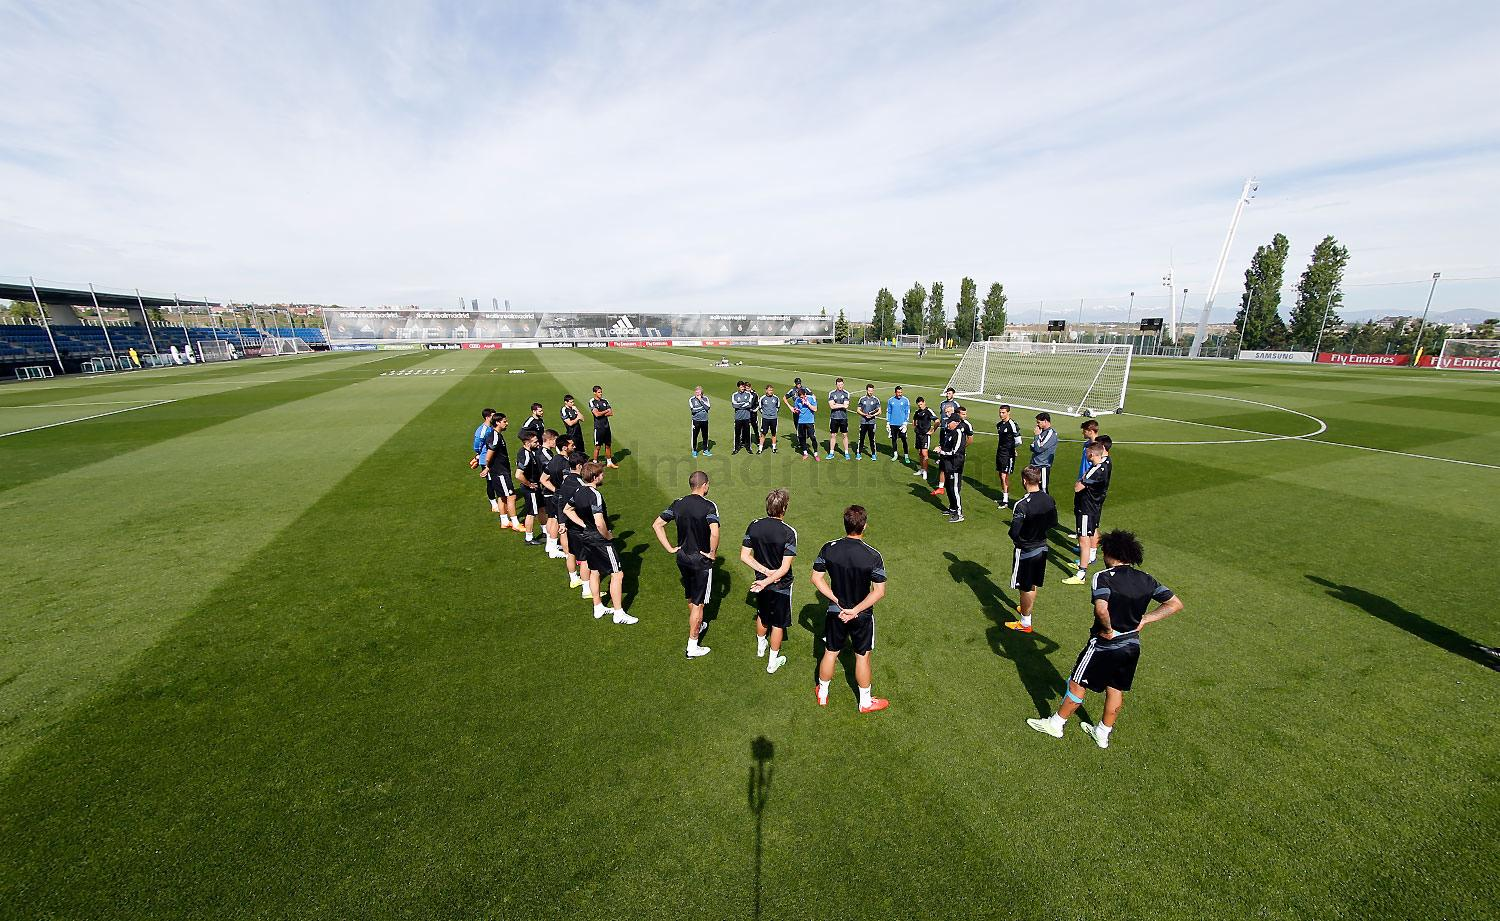 Real Madrid - Entrenamiento del Real Madrid - 21-04-2015